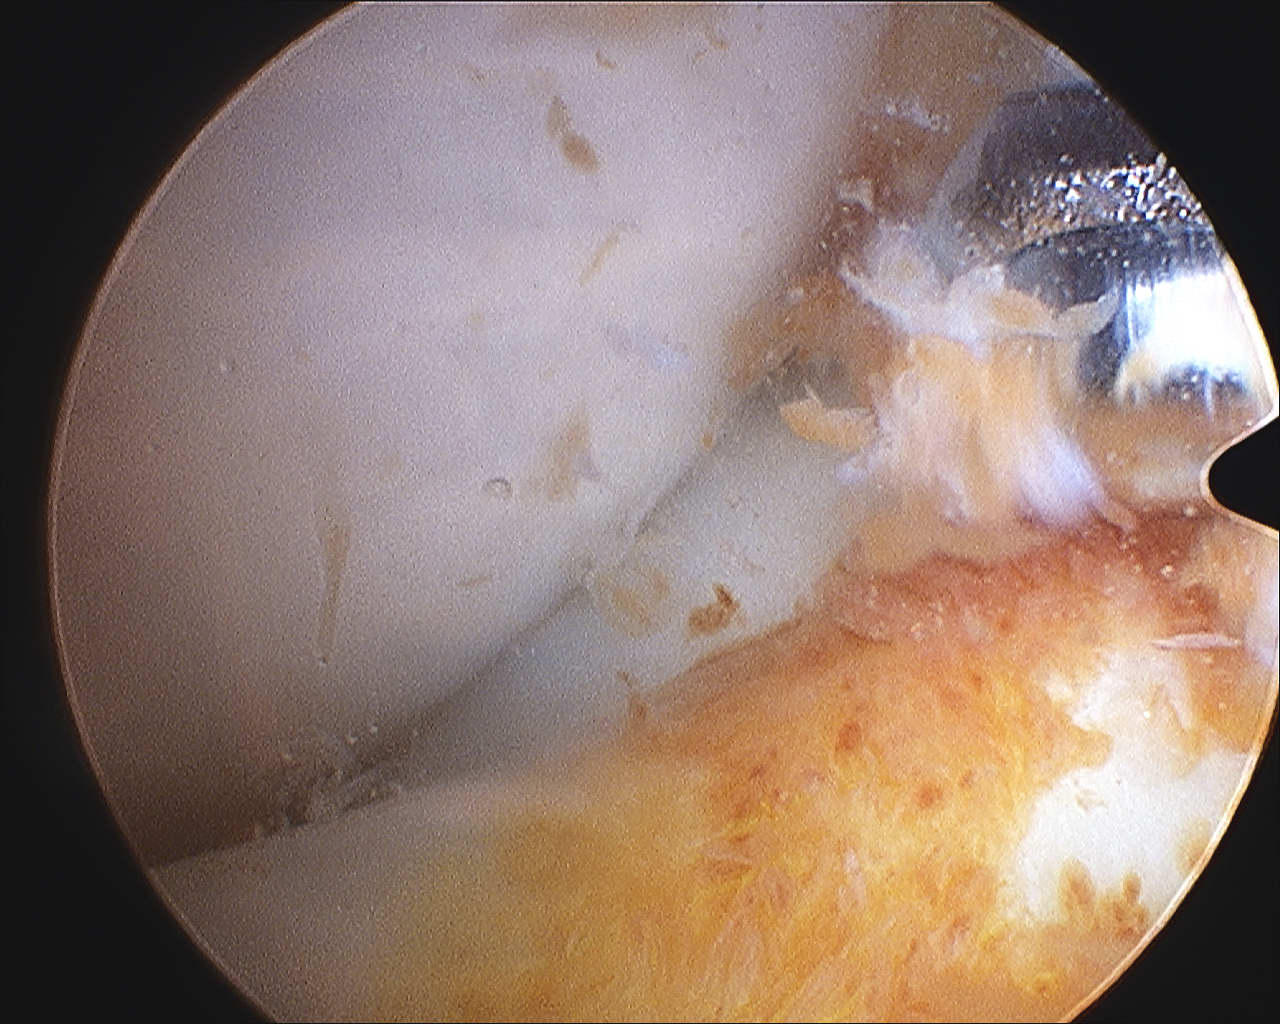 PVNS debridement knee